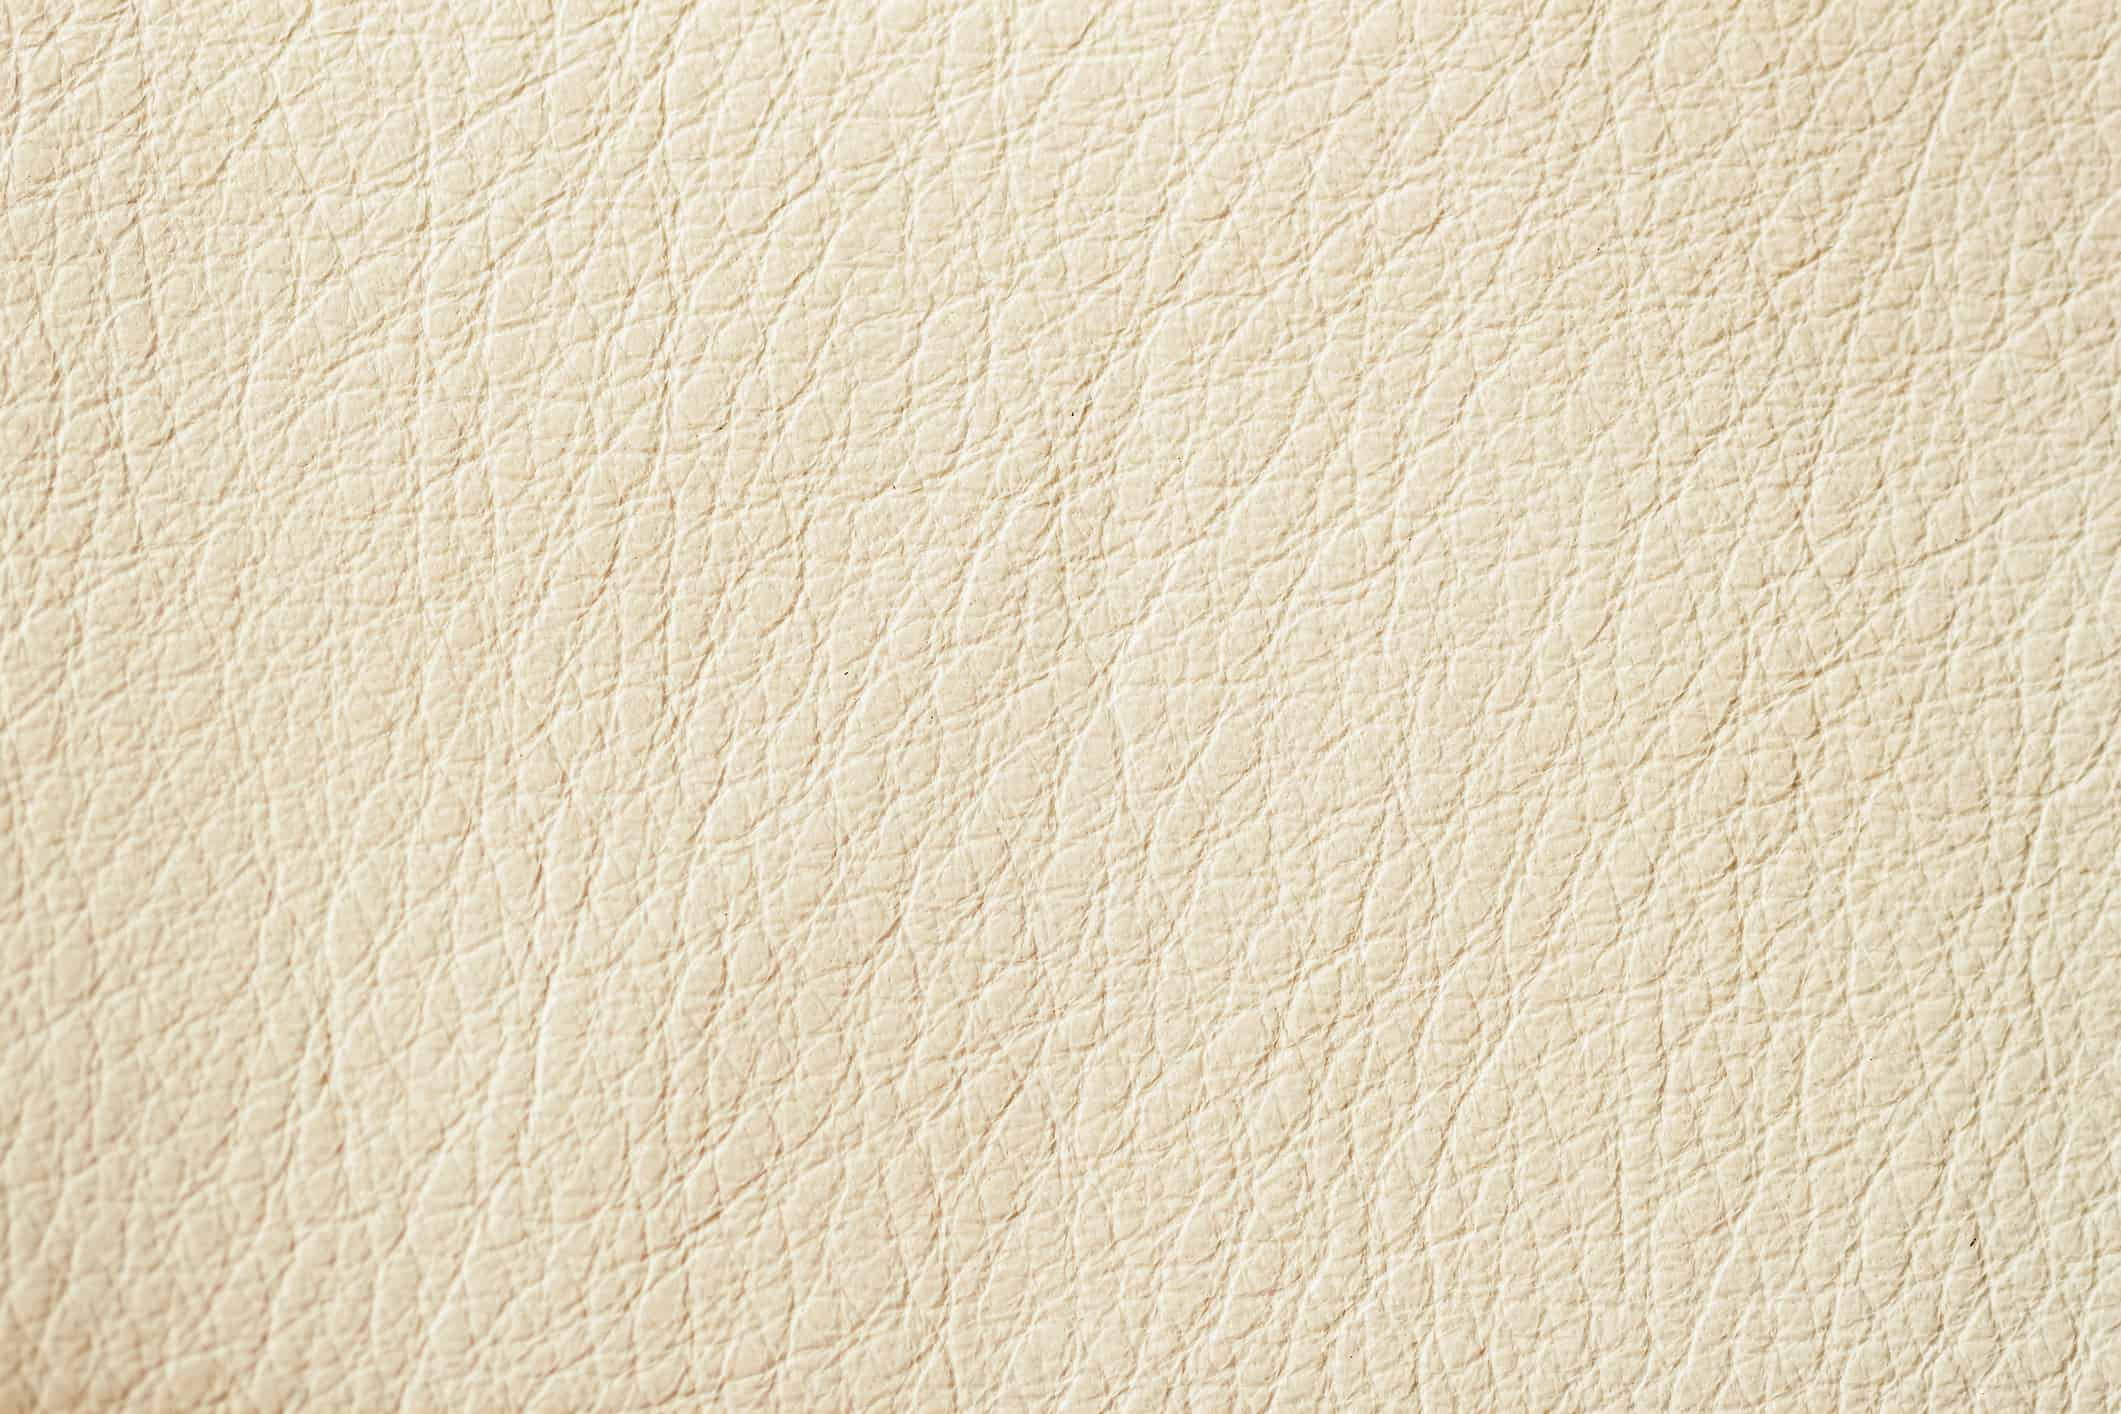 This type of leather is the best to clean and condition.  The leather has been stripped of the animals oils, it is then coloured (usually via a spray) a colour such as white, cream, red etc.  The leather is then covered in a clear lacquer to help protect the suite. In this case, I will use a leather cleaning foam by hand, or mechanically using rotating brushes.  Once clean I add a blend of wax and oils.